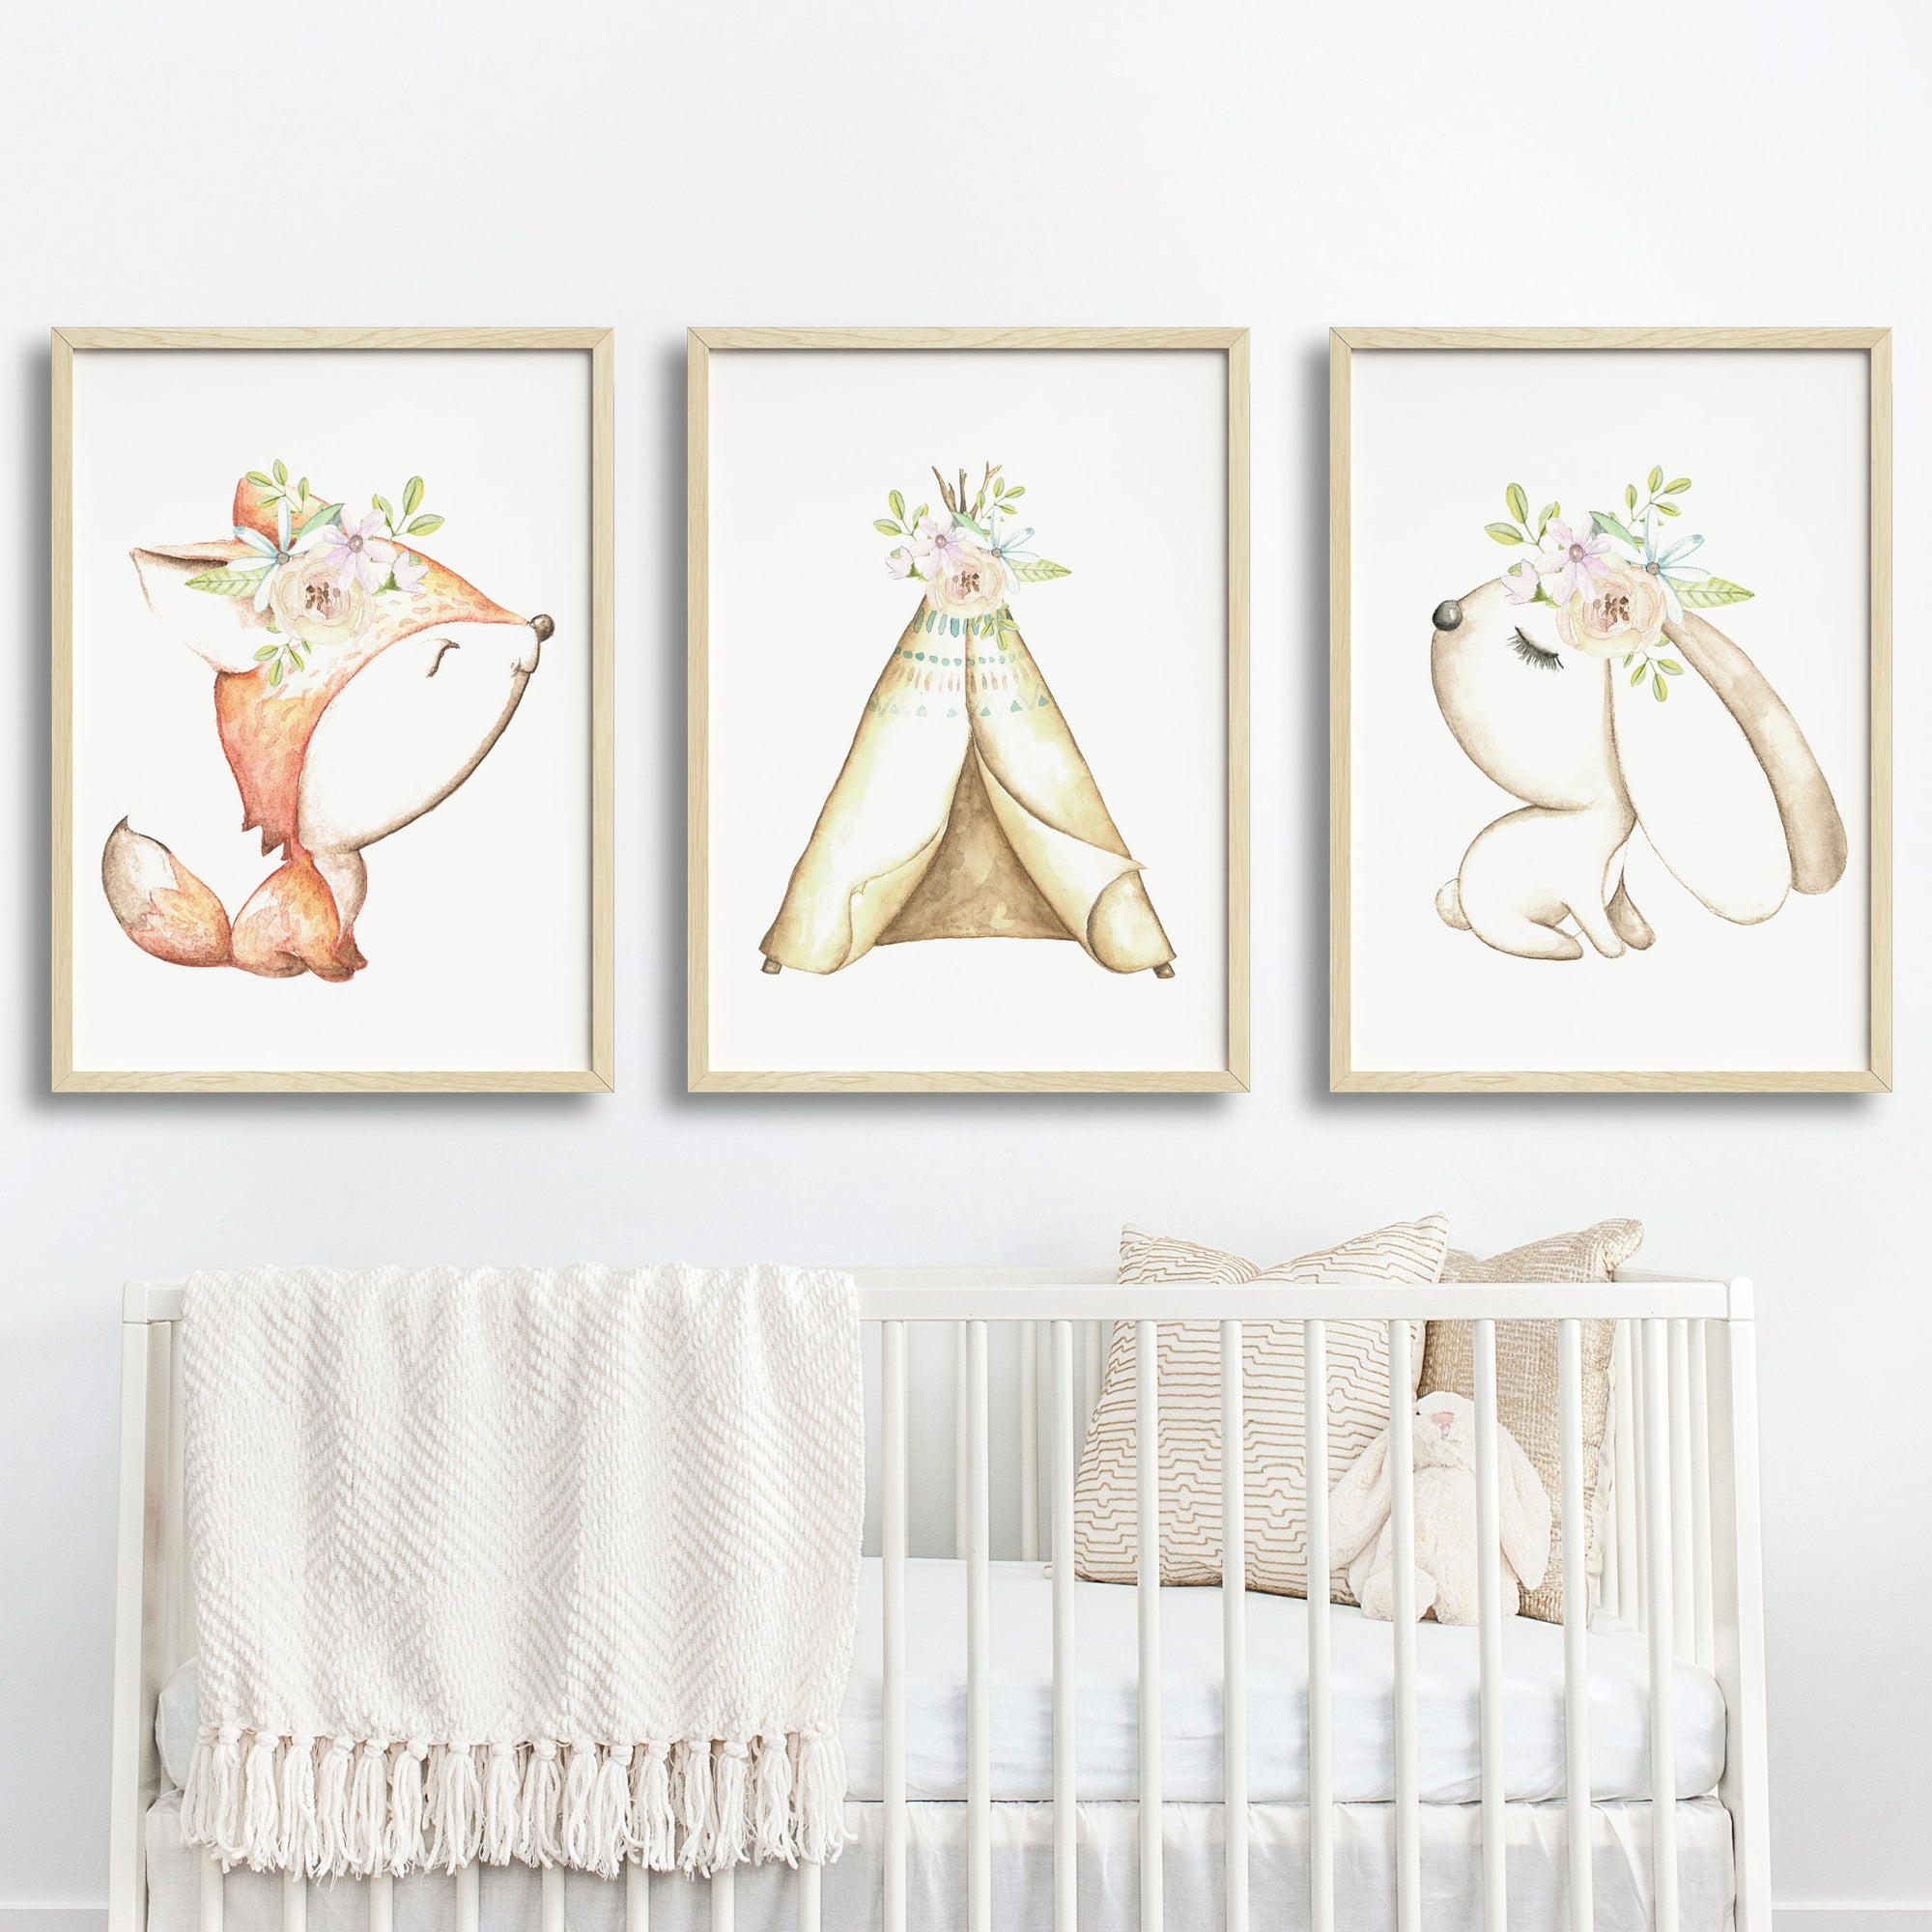 Baby, Girls Floral Woodland Nursery or Bedroom Wall Art Decor Print Set- Fox, Bunny & Teepee